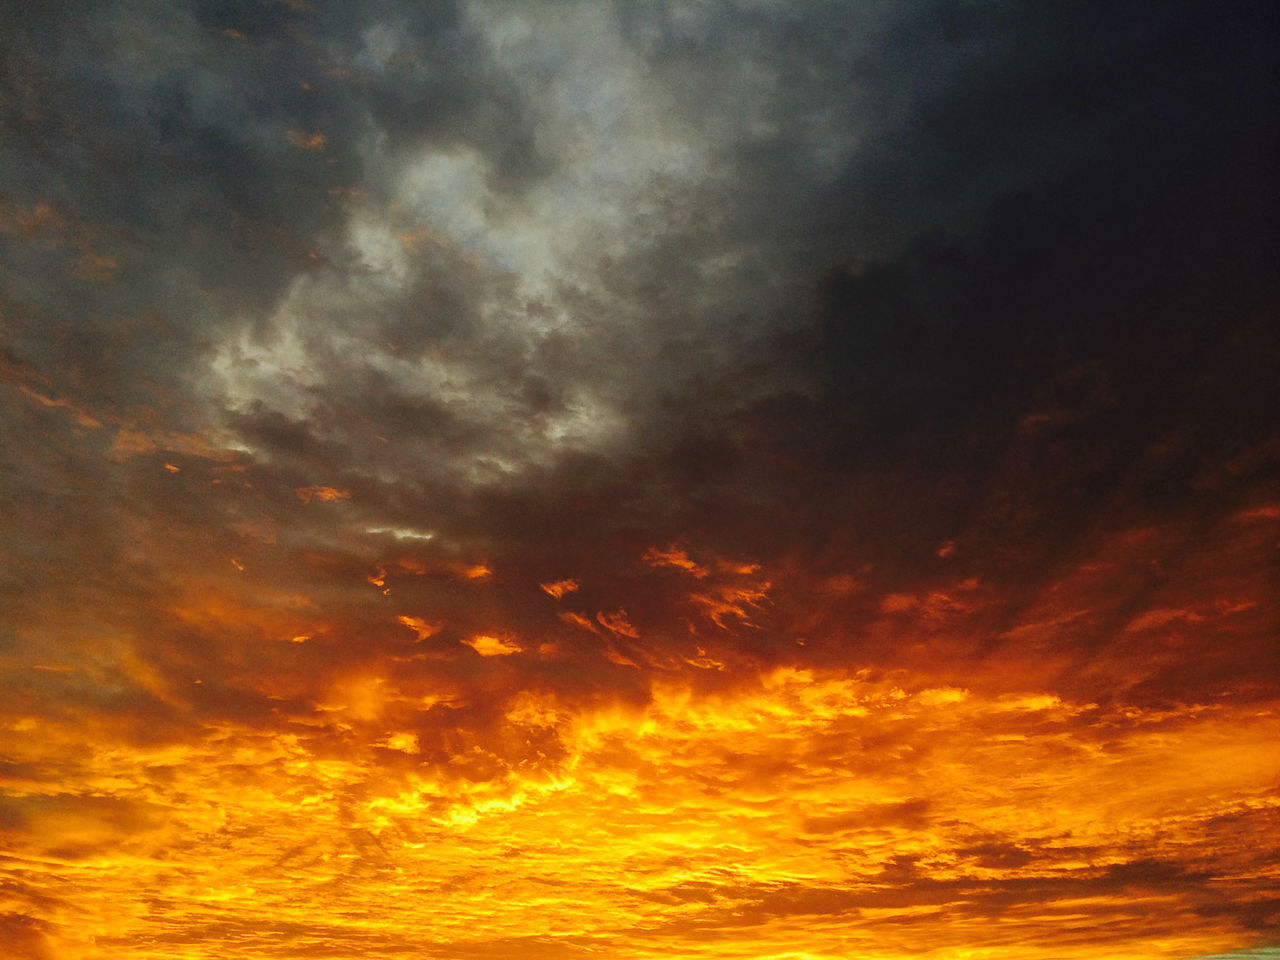 sunset, orange color, dramatic sky, beauty in nature, nature, scenics, sky, yellow, majestic, cloud - sky, tranquility, no people, tranquil scene, low angle view, outdoors, backgrounds, sky only, day